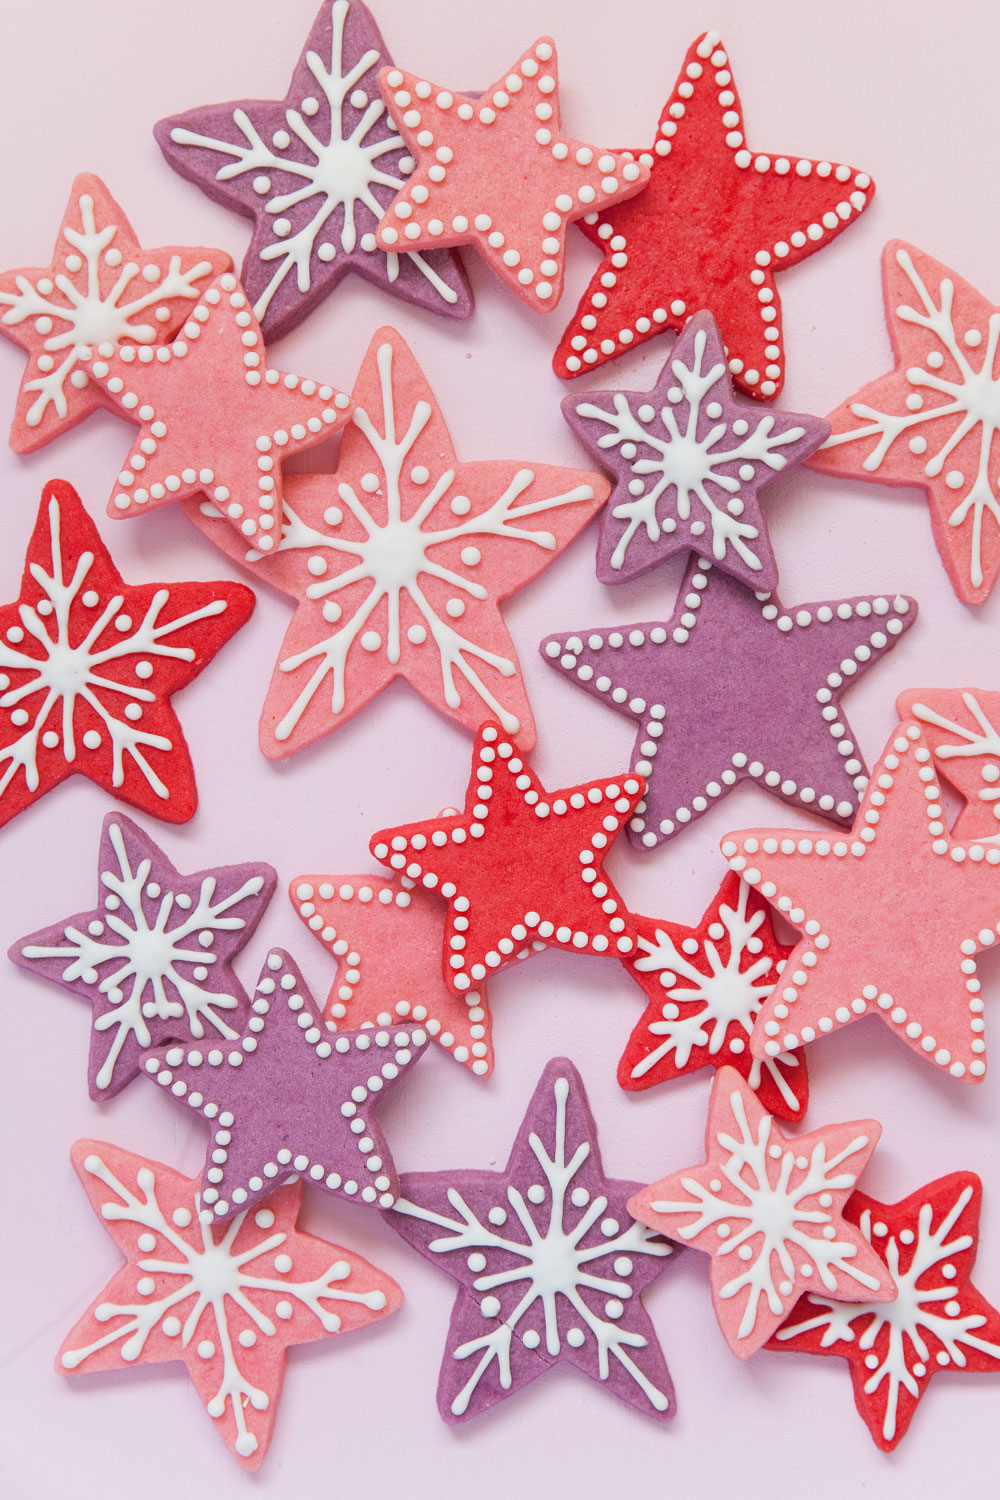 Star Christmas Cookies Tell Love And Party